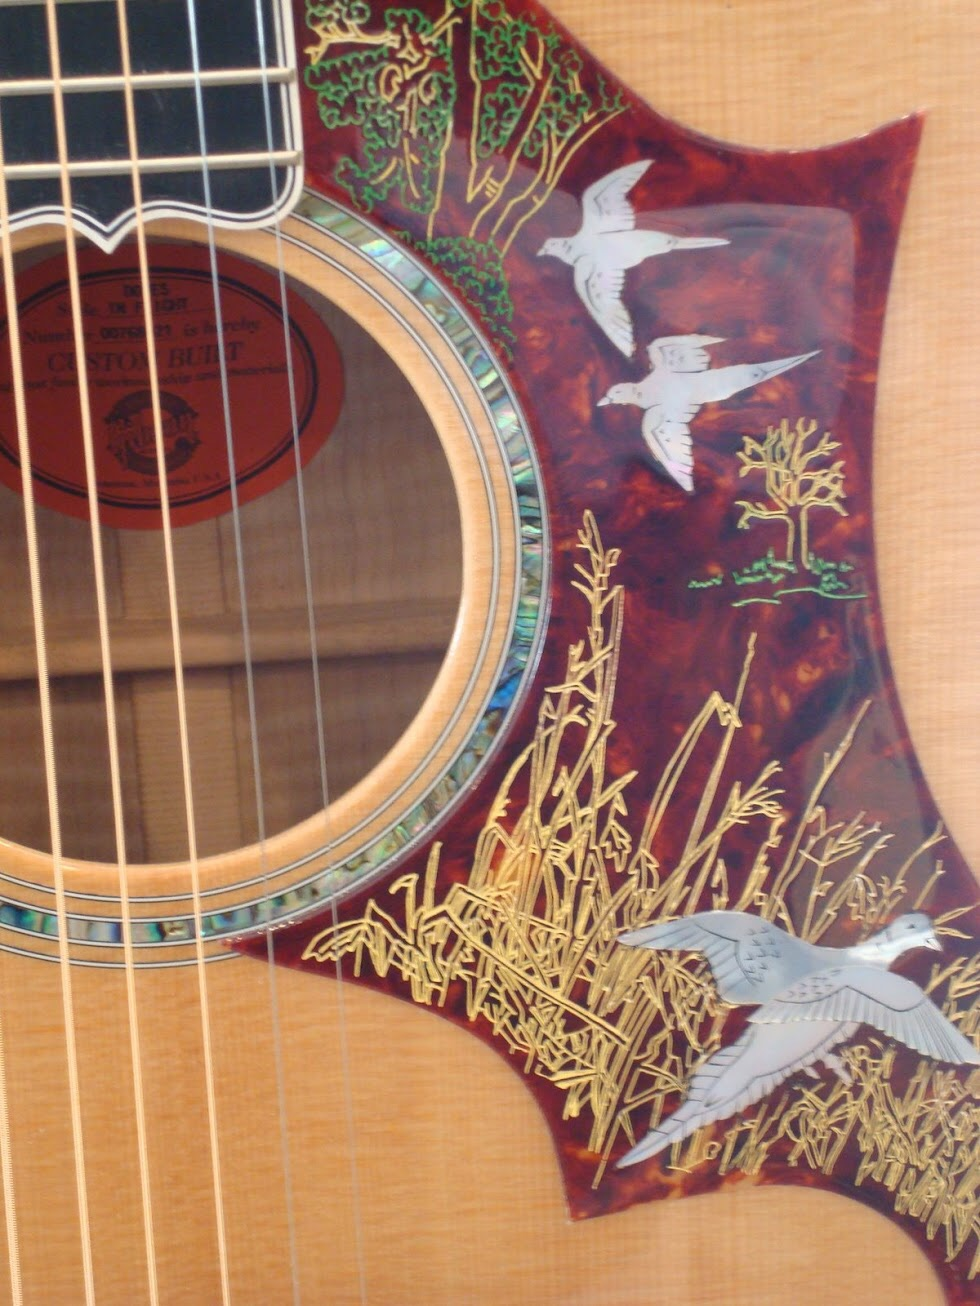 Emmylou Harris' Gibson Hummingbird guitar, available to play at the Gibson factory tour.